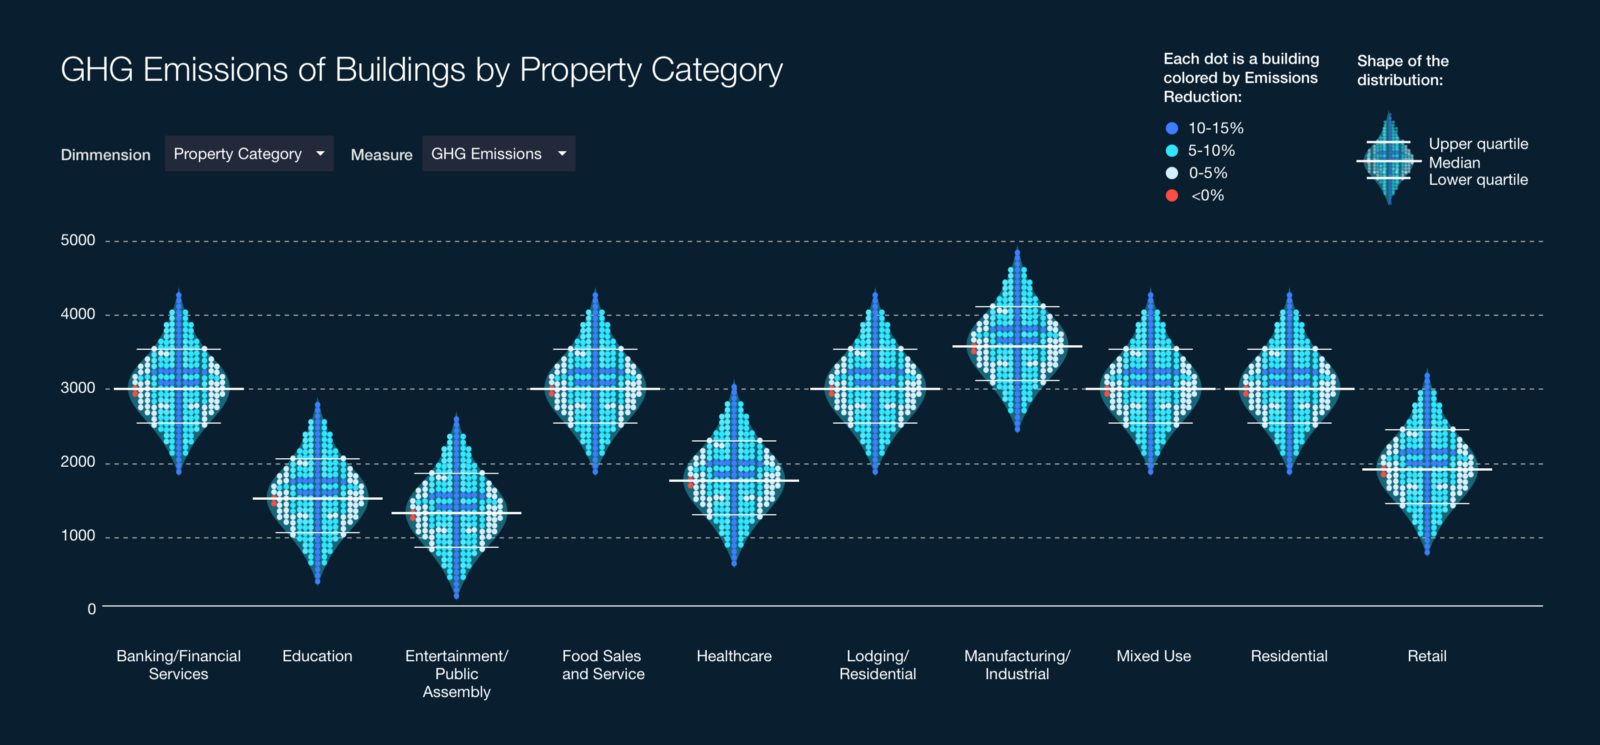 Envisioning Data in New Ways: 3 New Charts You've Never Seen Before